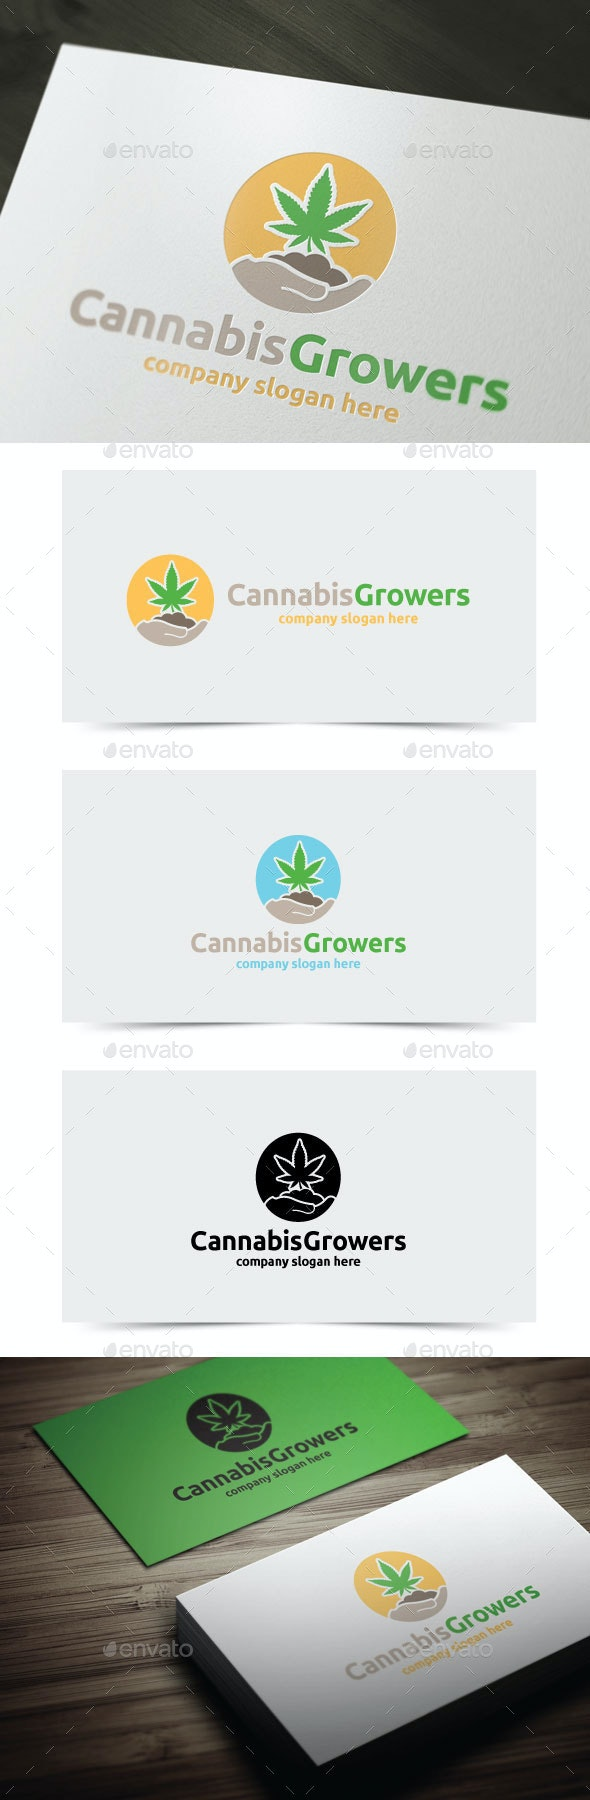 Cannabis Growers - Objects Logo Templates